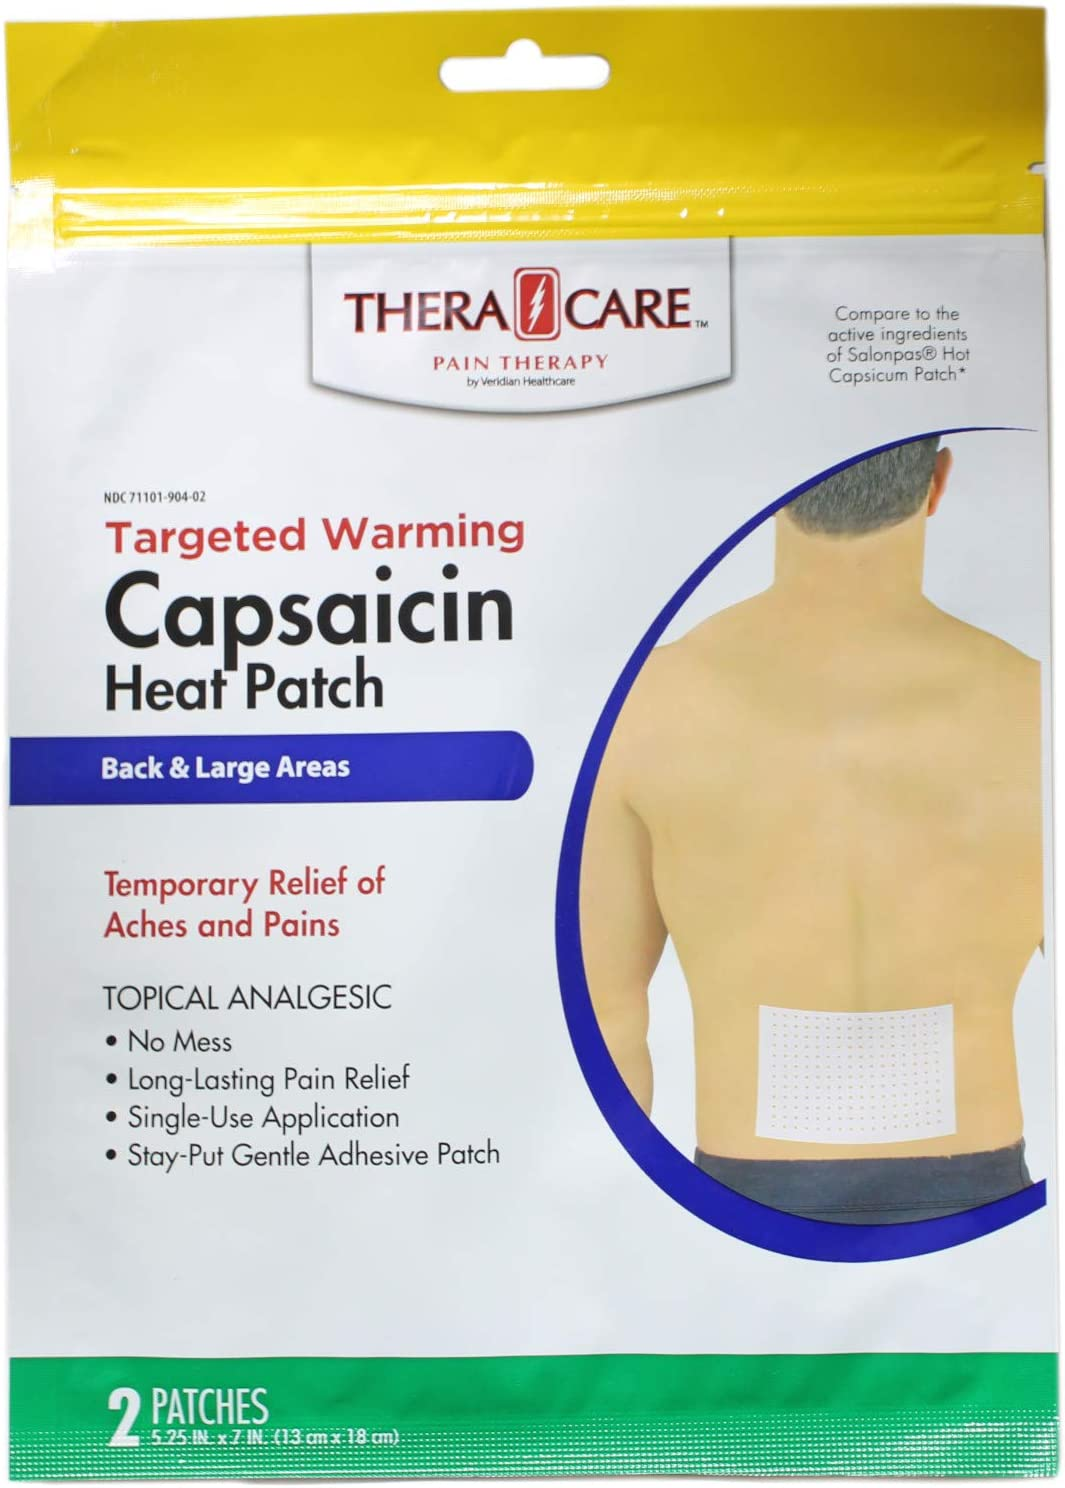 Thera Care Capsicum Hot Patch 2 Value of 12 Pack Raleigh At the price of surprise Mall Count